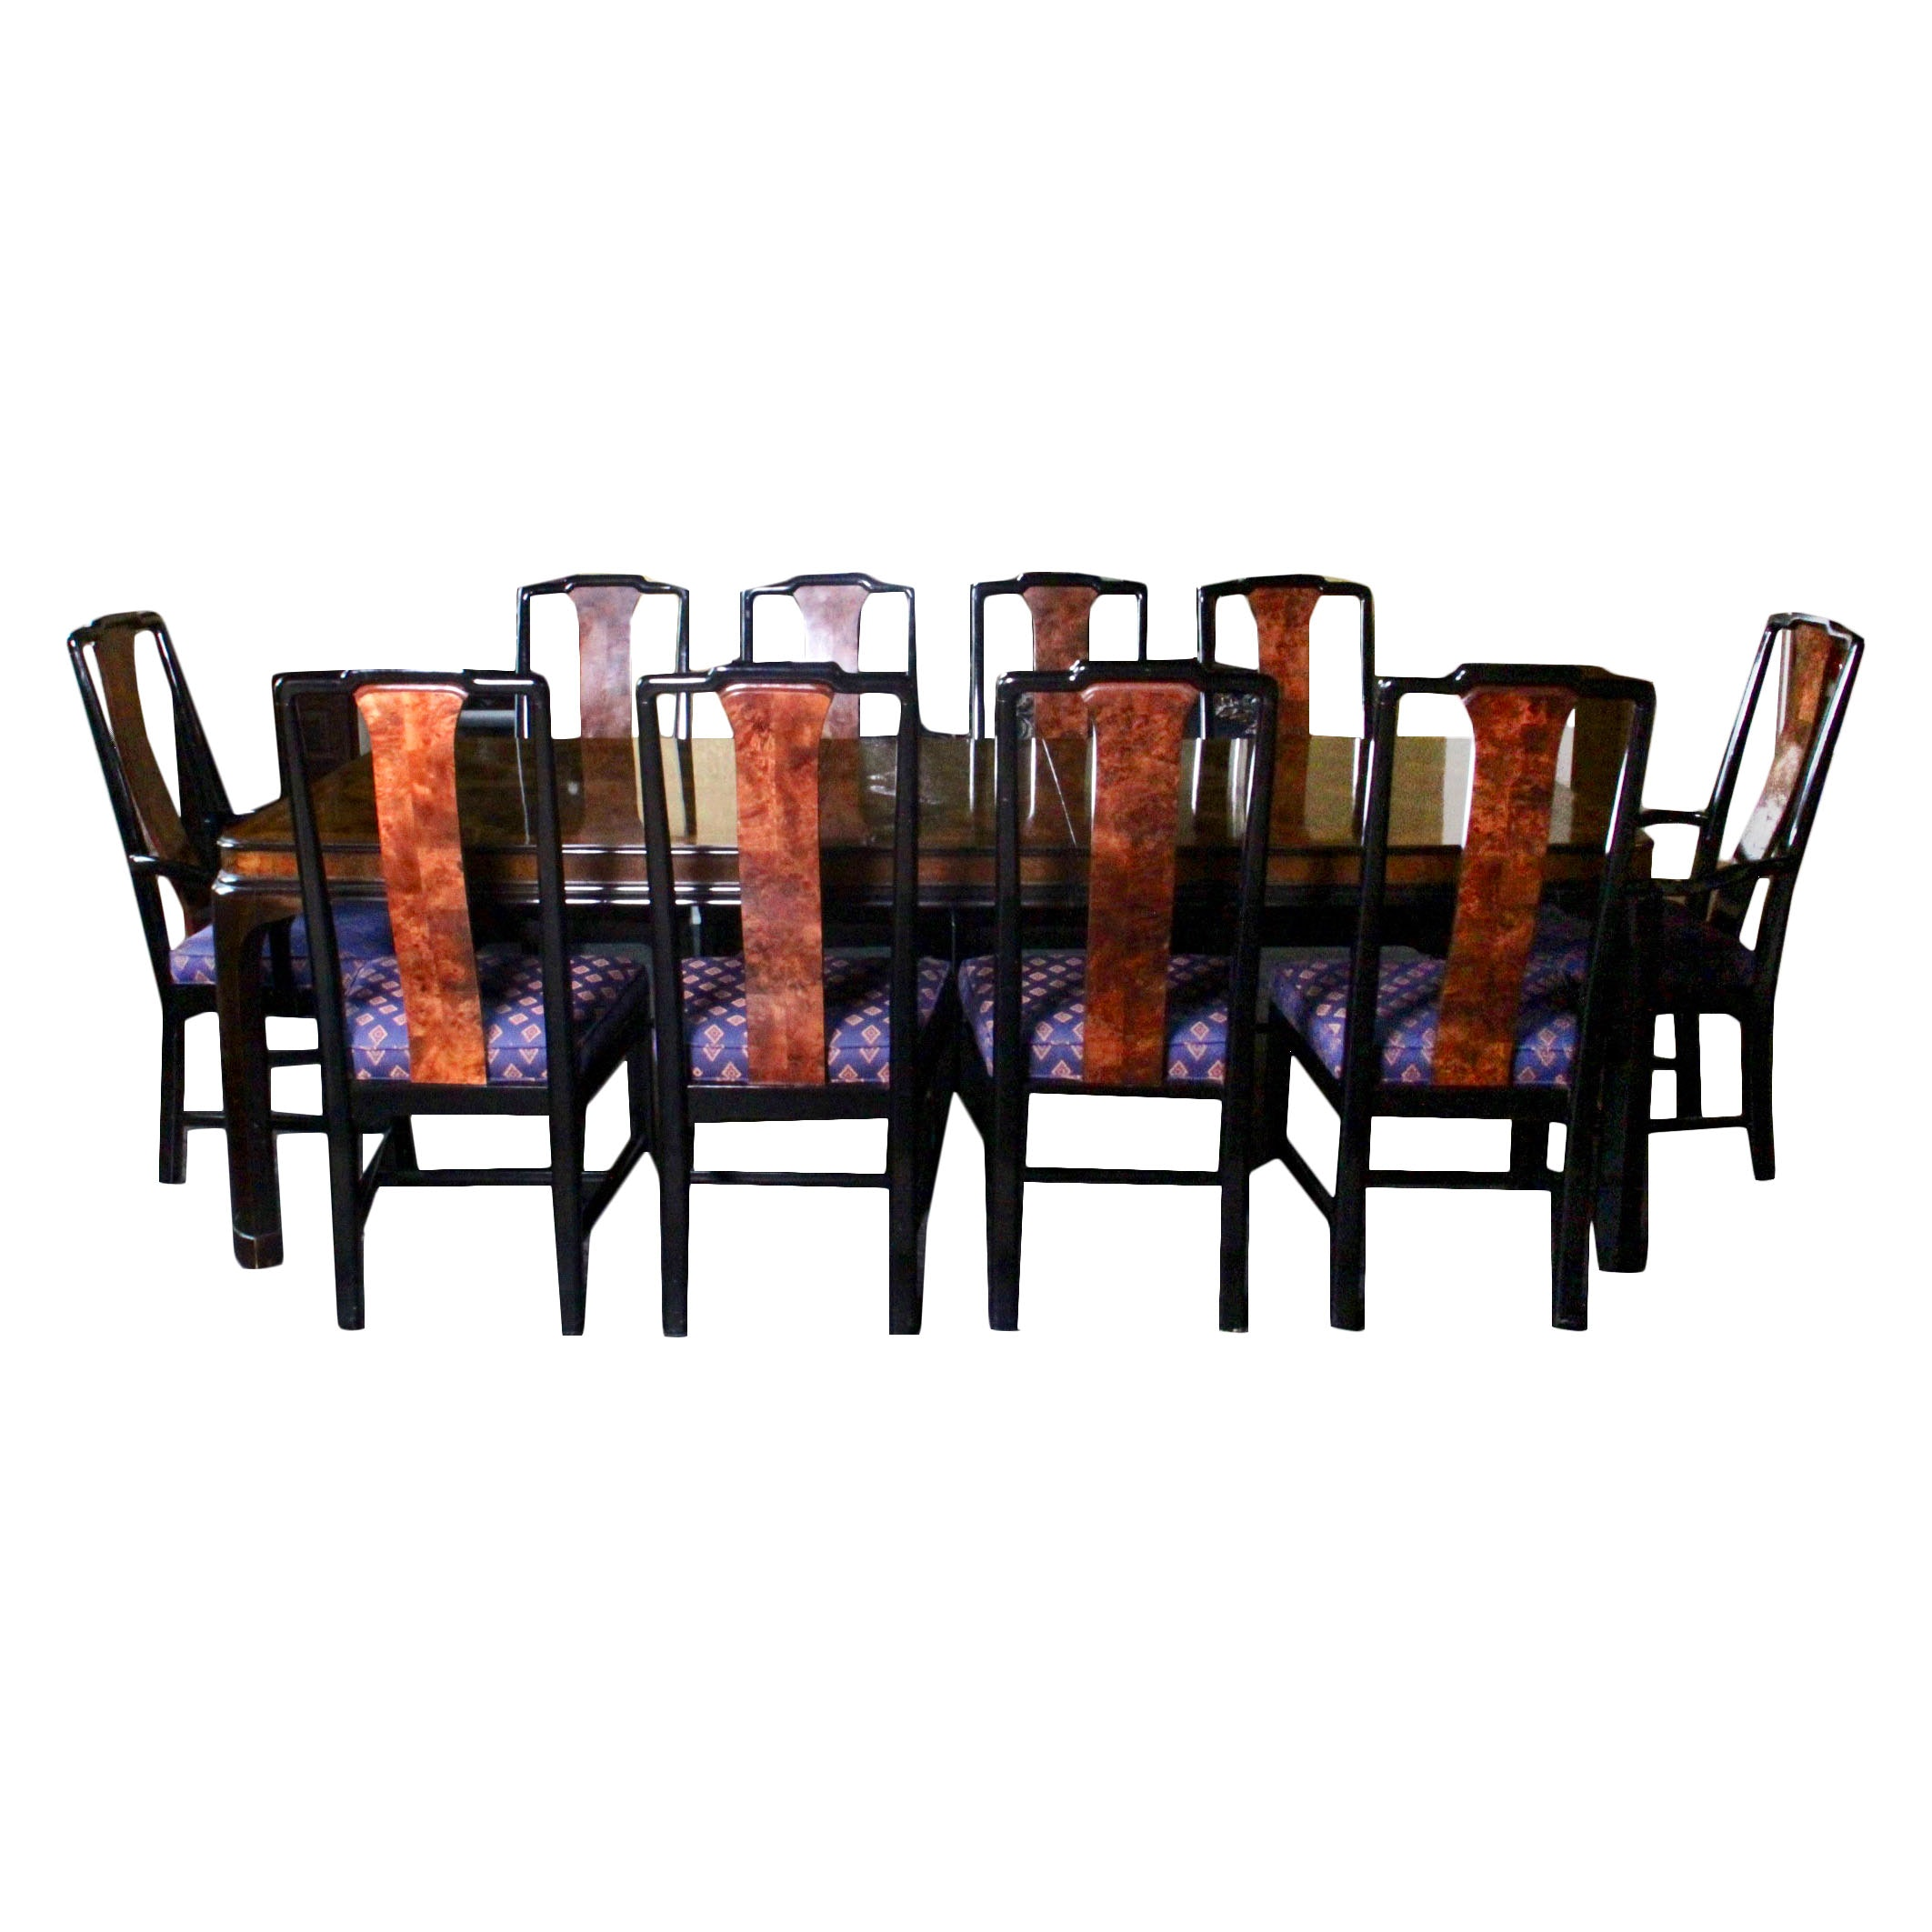 Drexel Heritage Furnishings Dining Table and Chair Set